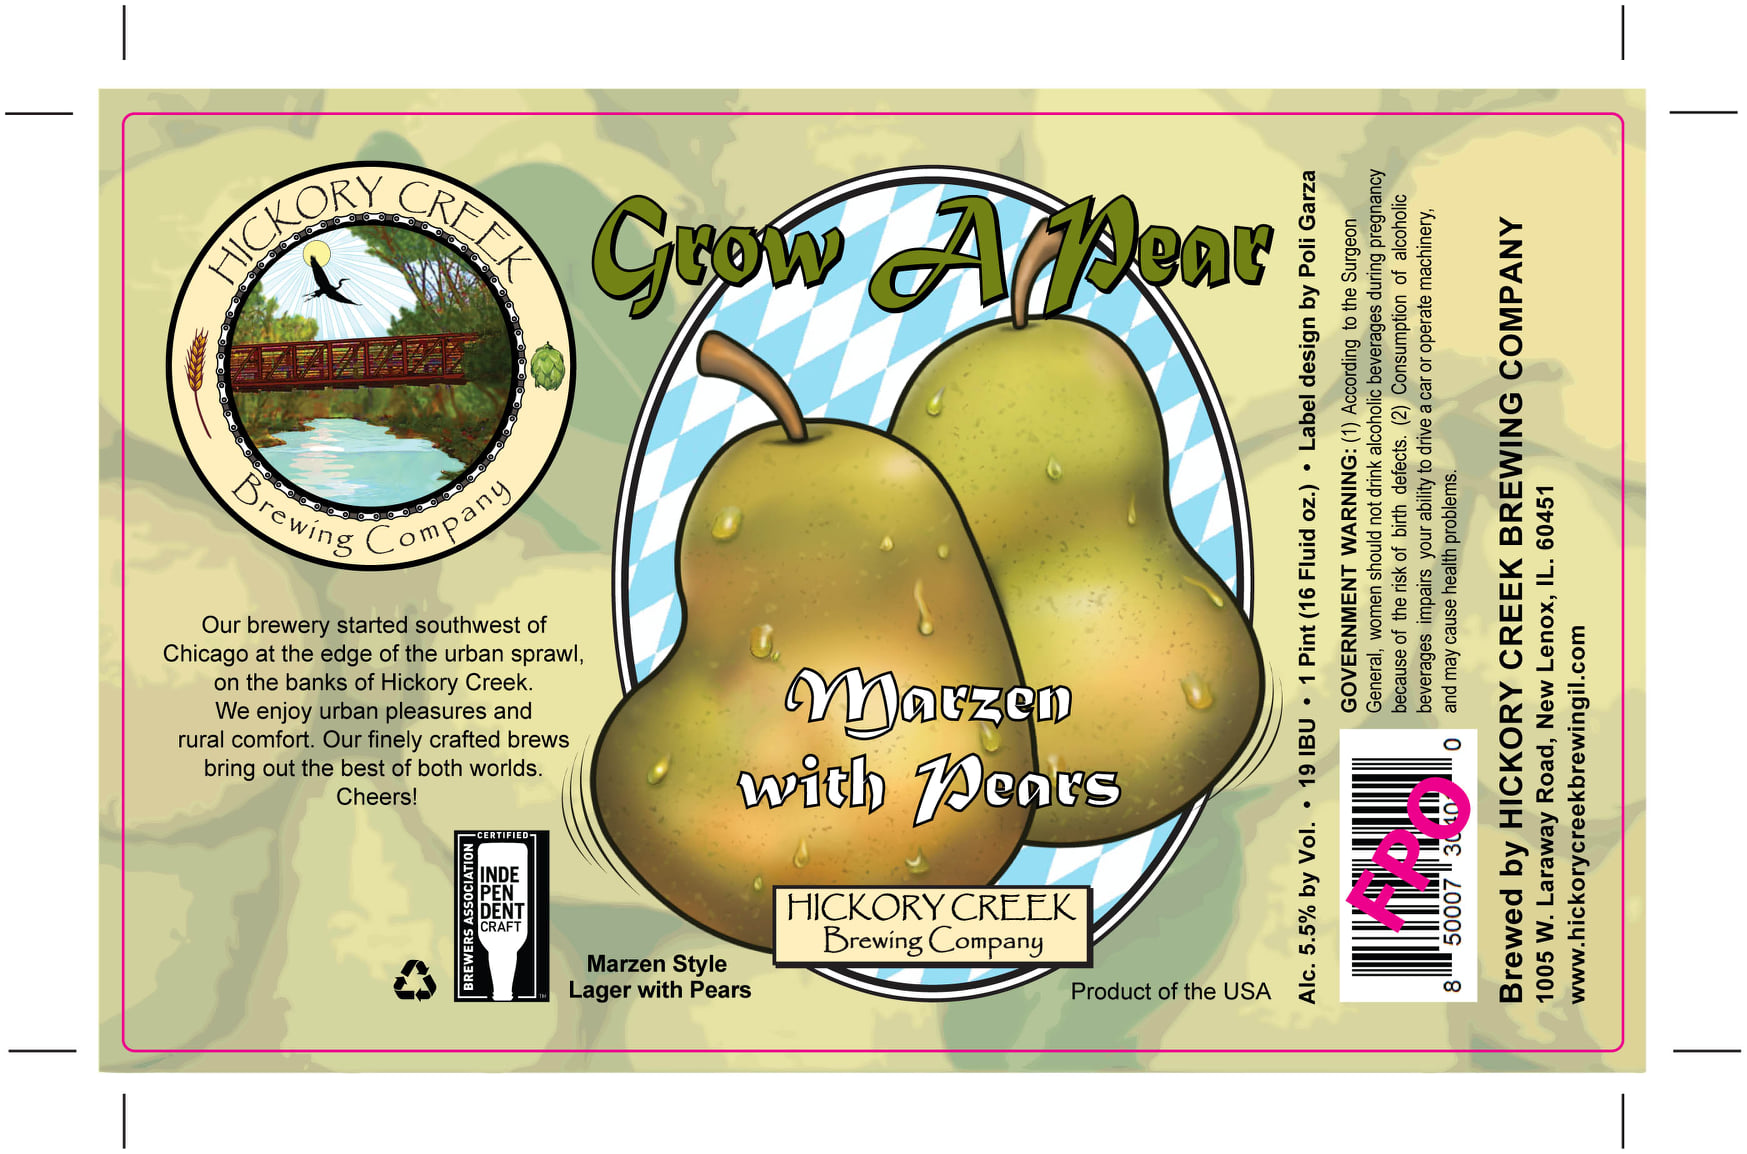 Label for Hickory Creek's Grow a Pear